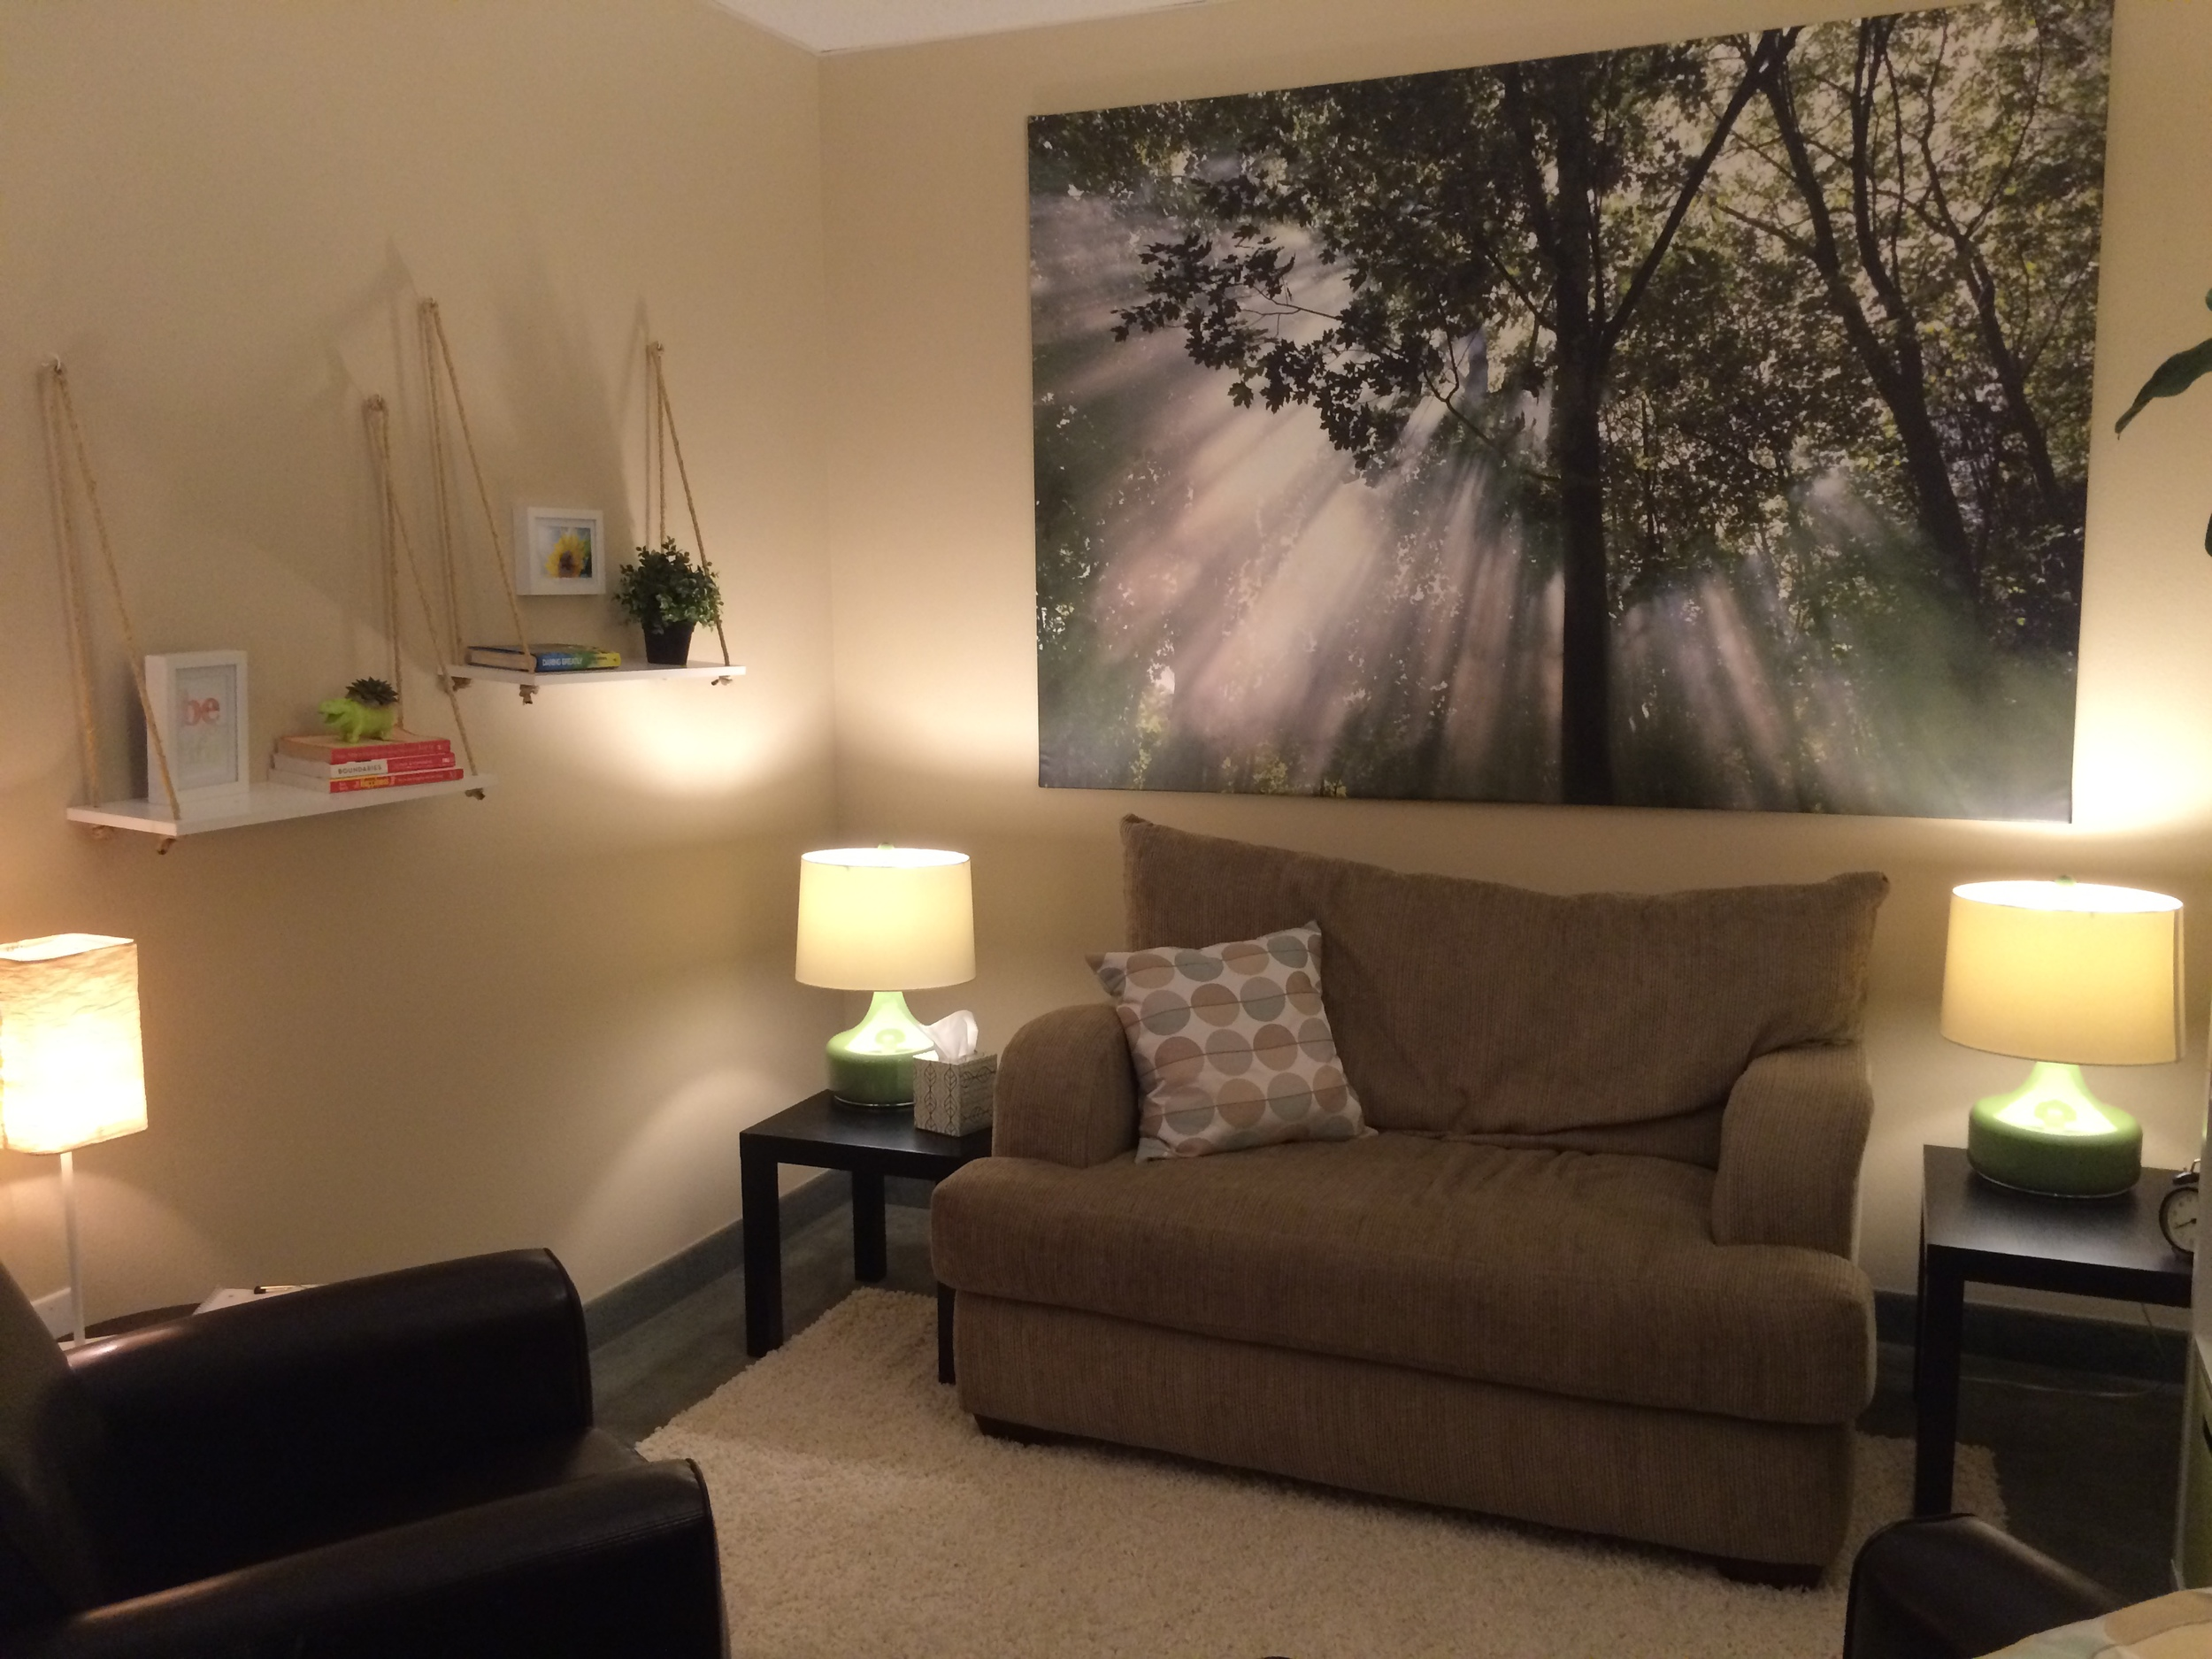 The new Get Centered Counseling office located in Suite 100-D of the H.H. Hall Building in Vancouver, WA